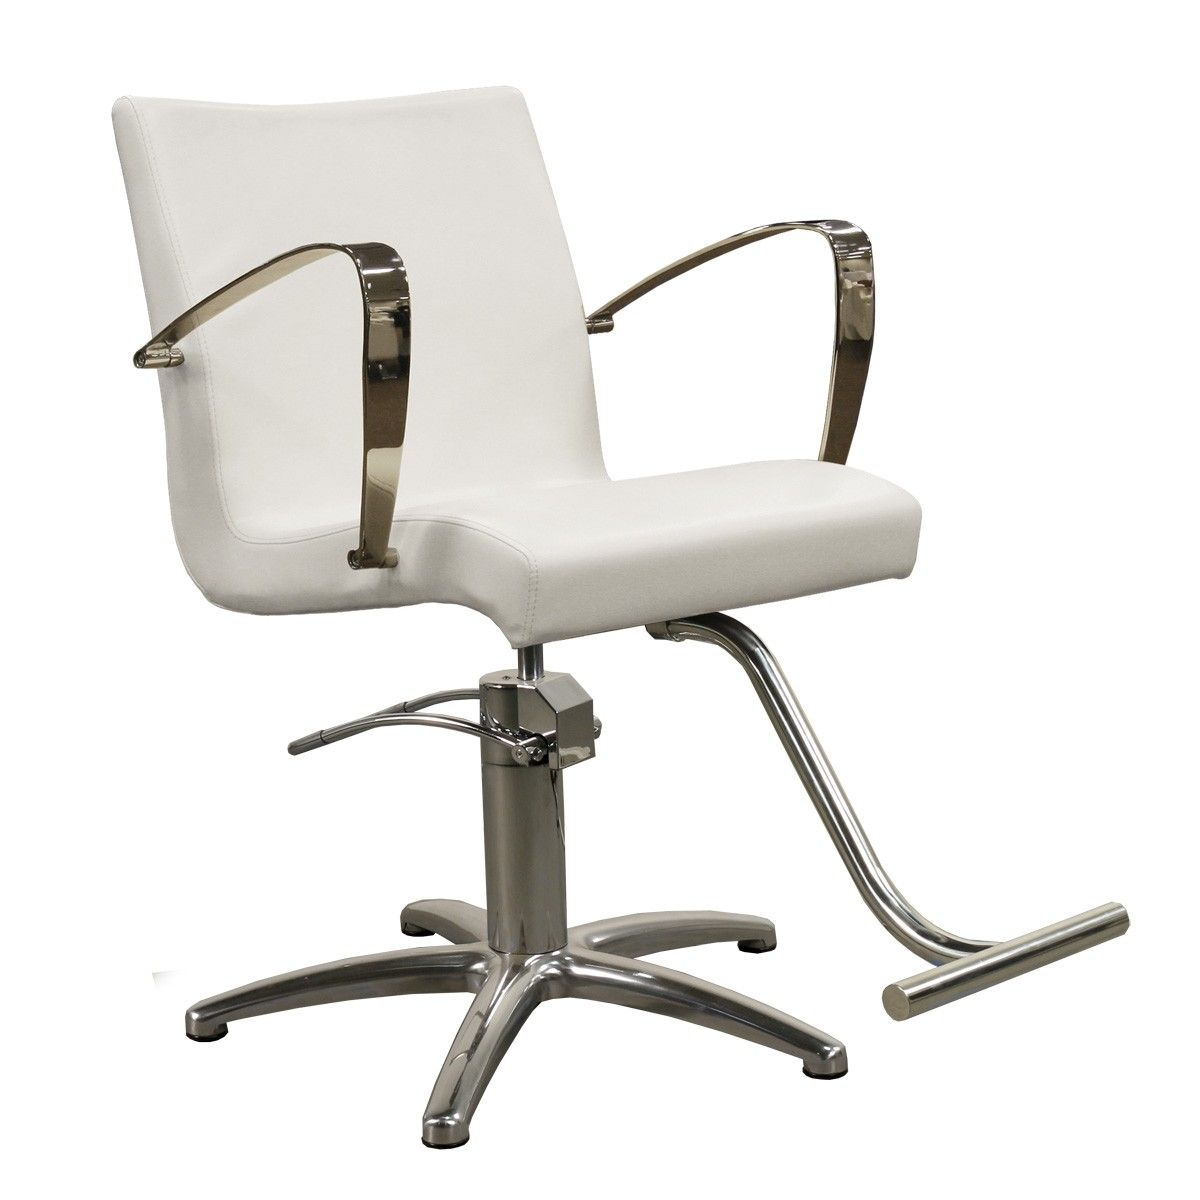 Strange Carrera Styling Chair In Alpine White In 2019 Styling Bralicious Painted Fabric Chair Ideas Braliciousco